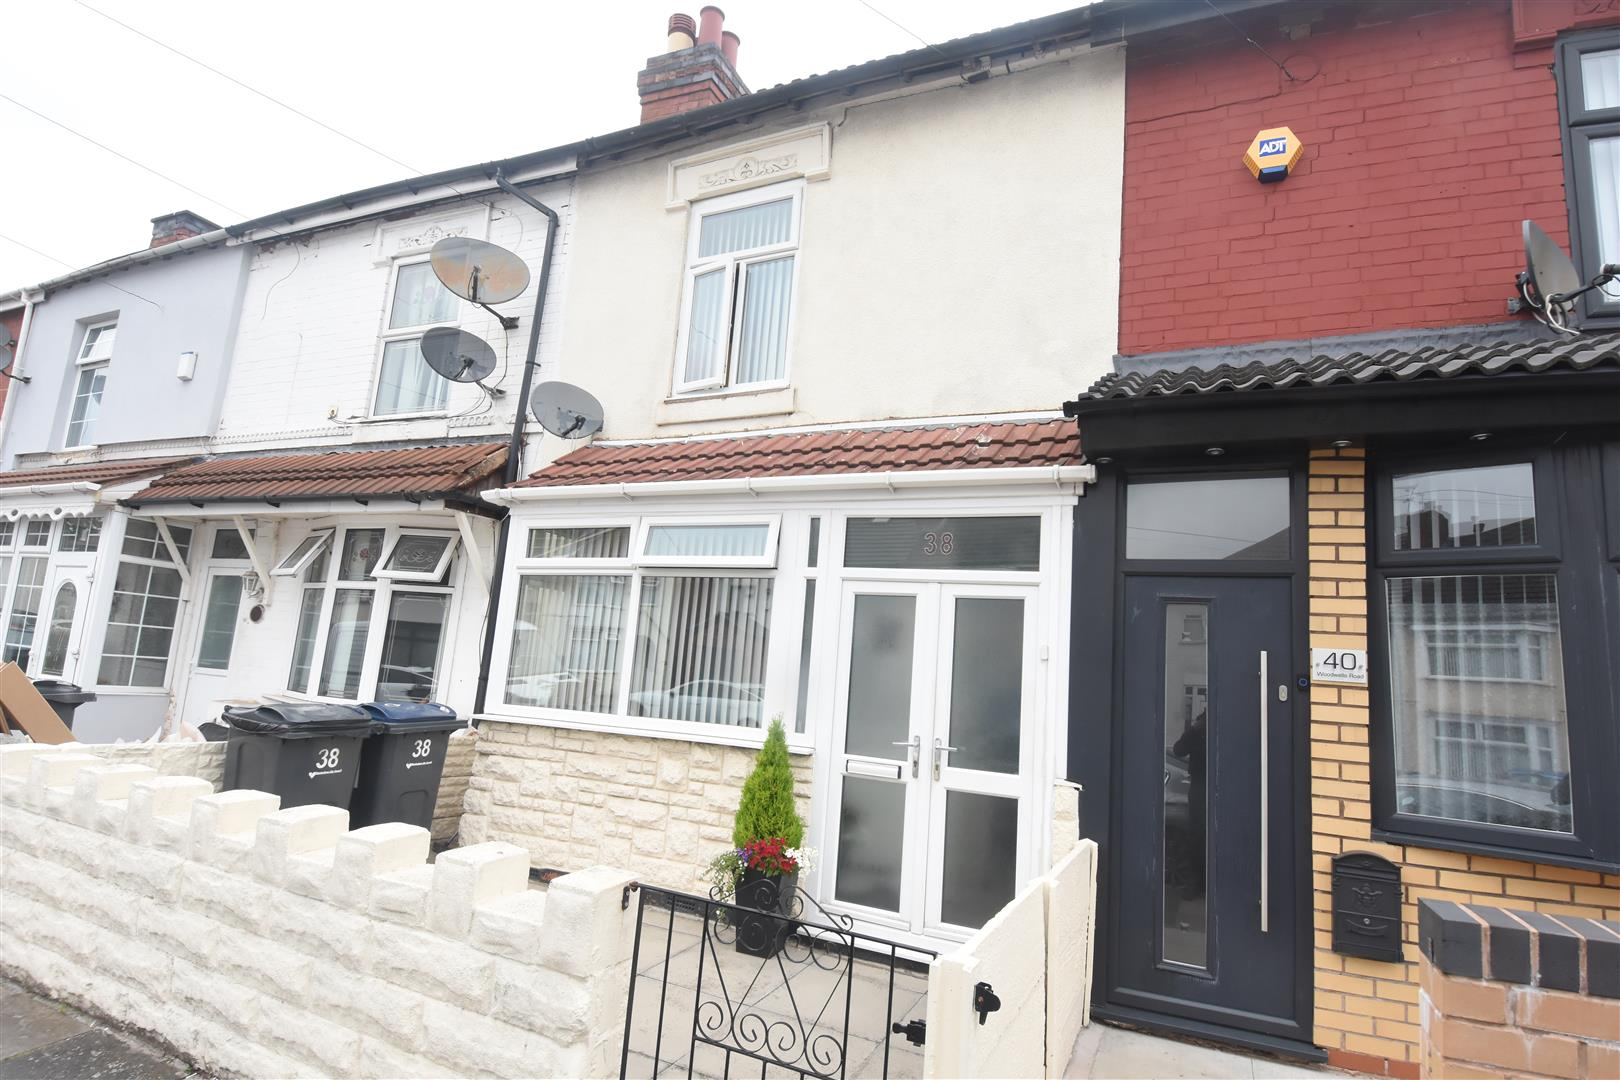 3 bed house for sale in Woodwells Road, Birmingham, B8